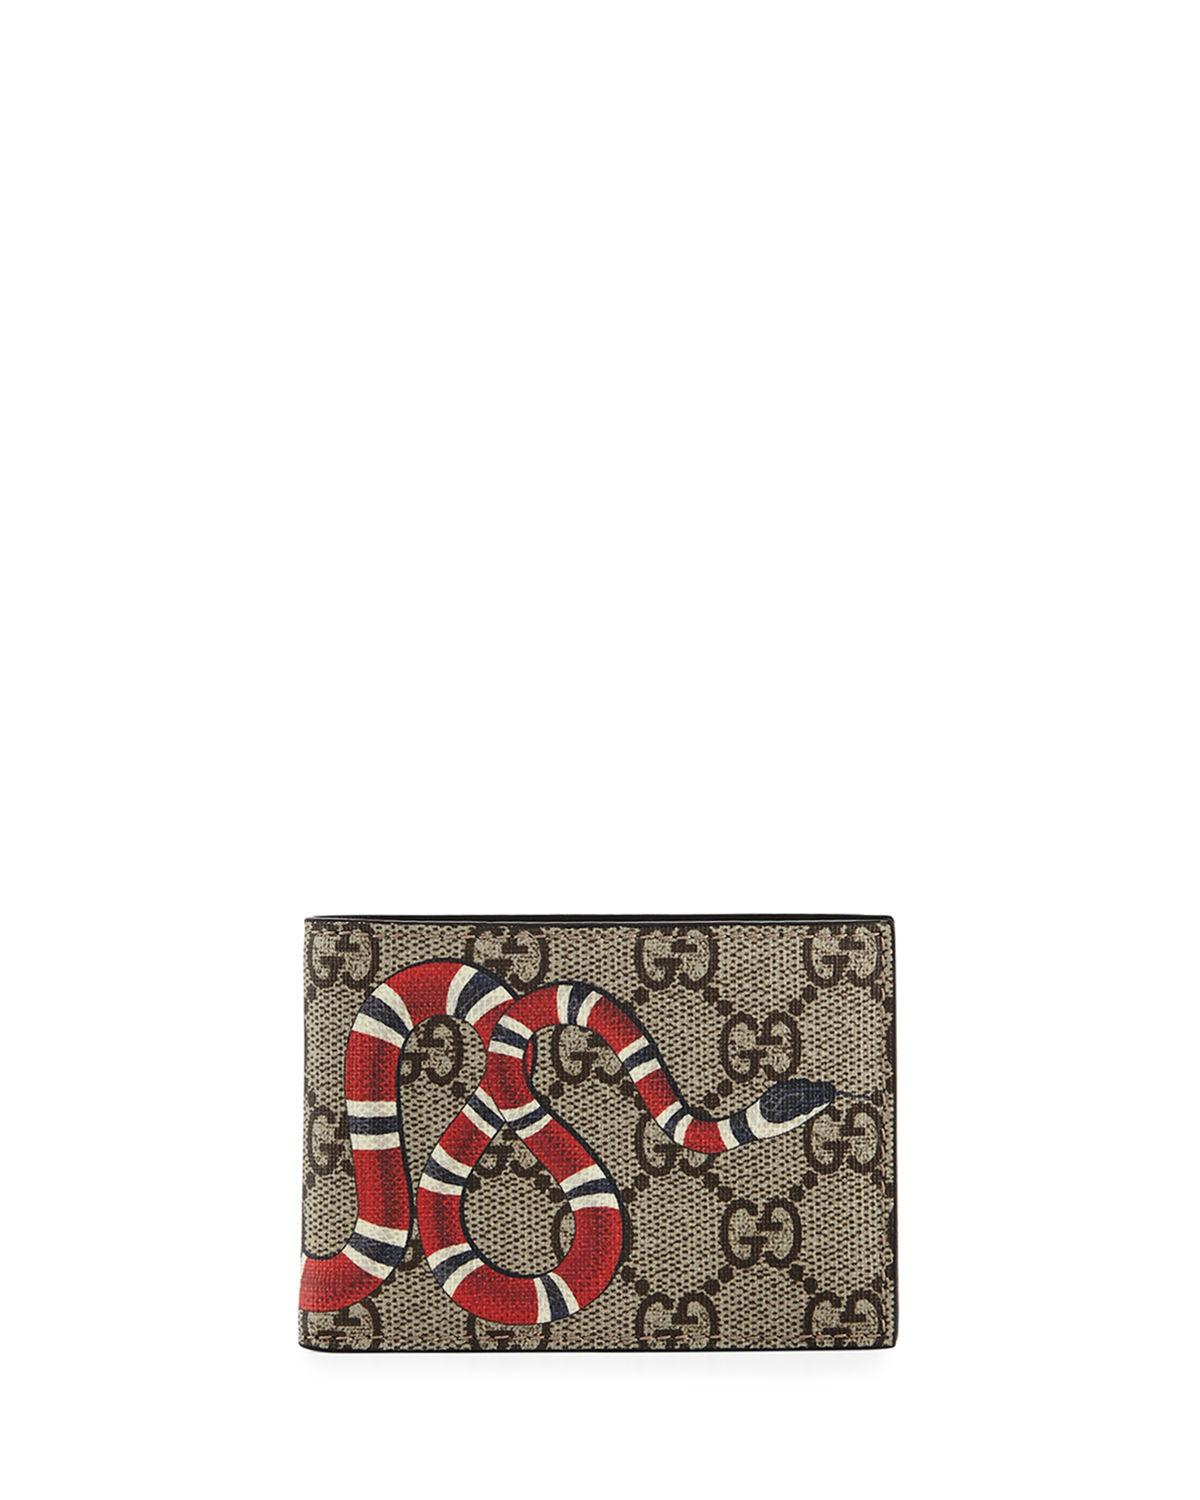 015b50376fbf Gucci Snake Printed Coated Canvas Wallet in Natural for Men - Save ...